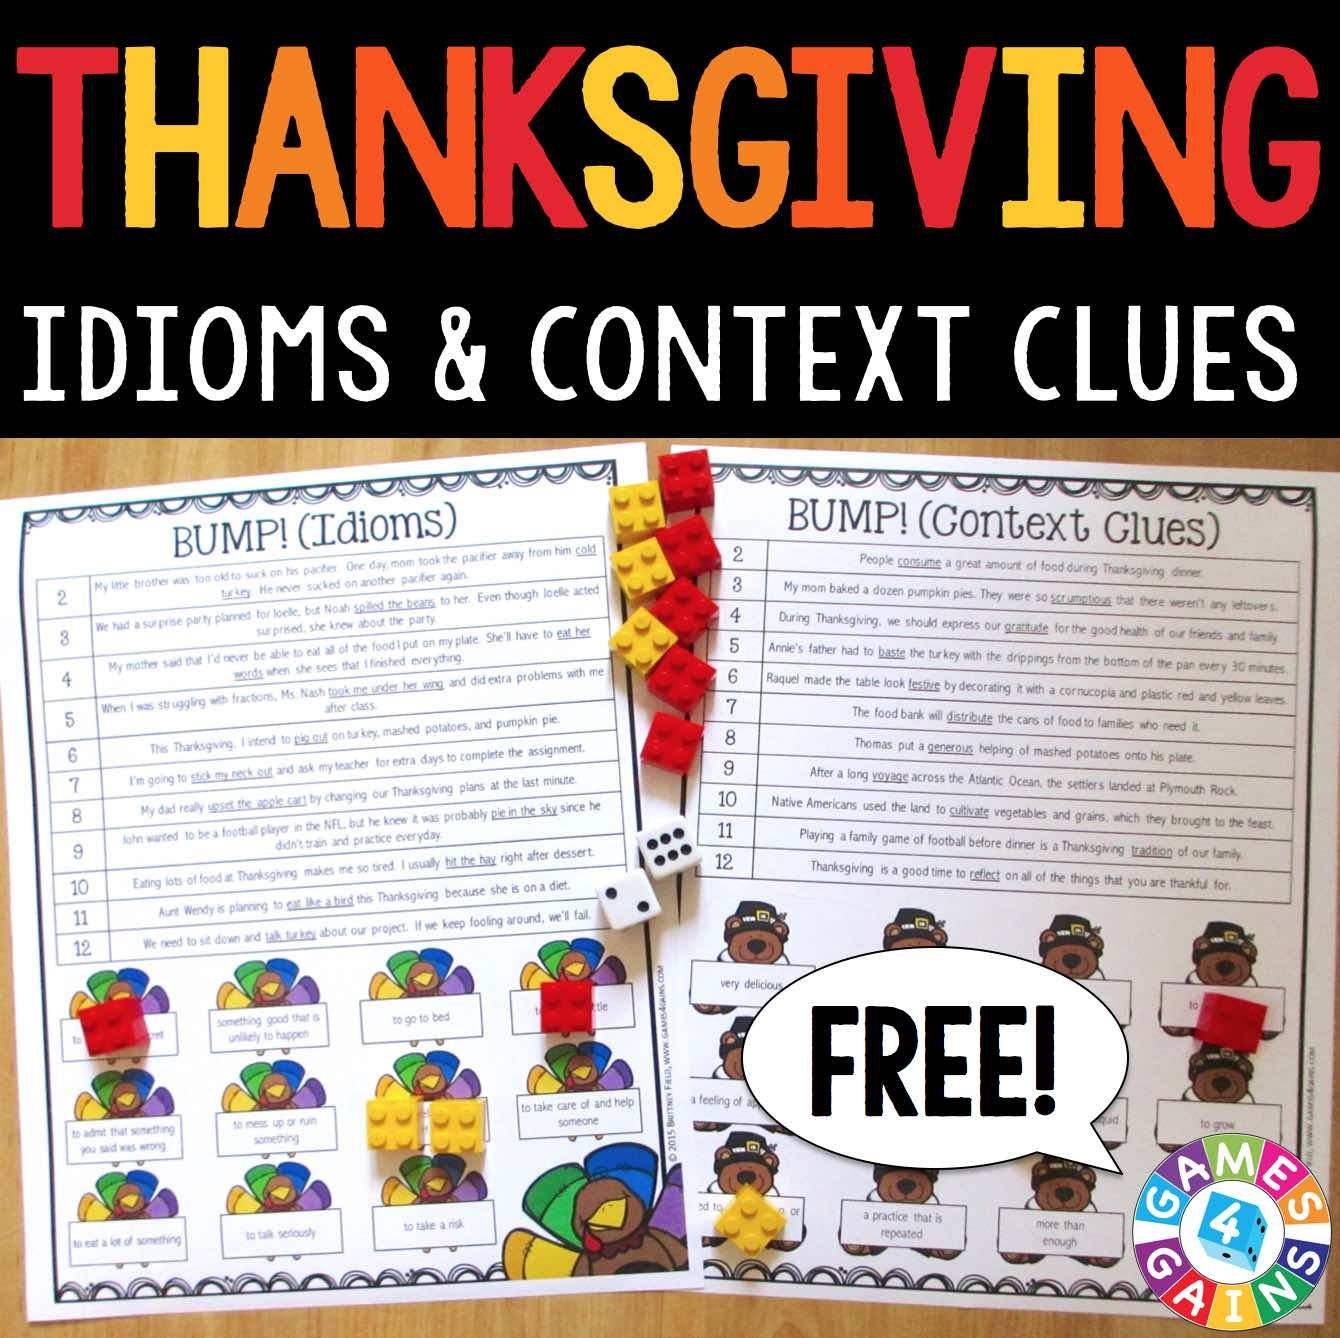 Bump Up The Fun With These Free Thanksgiving Games